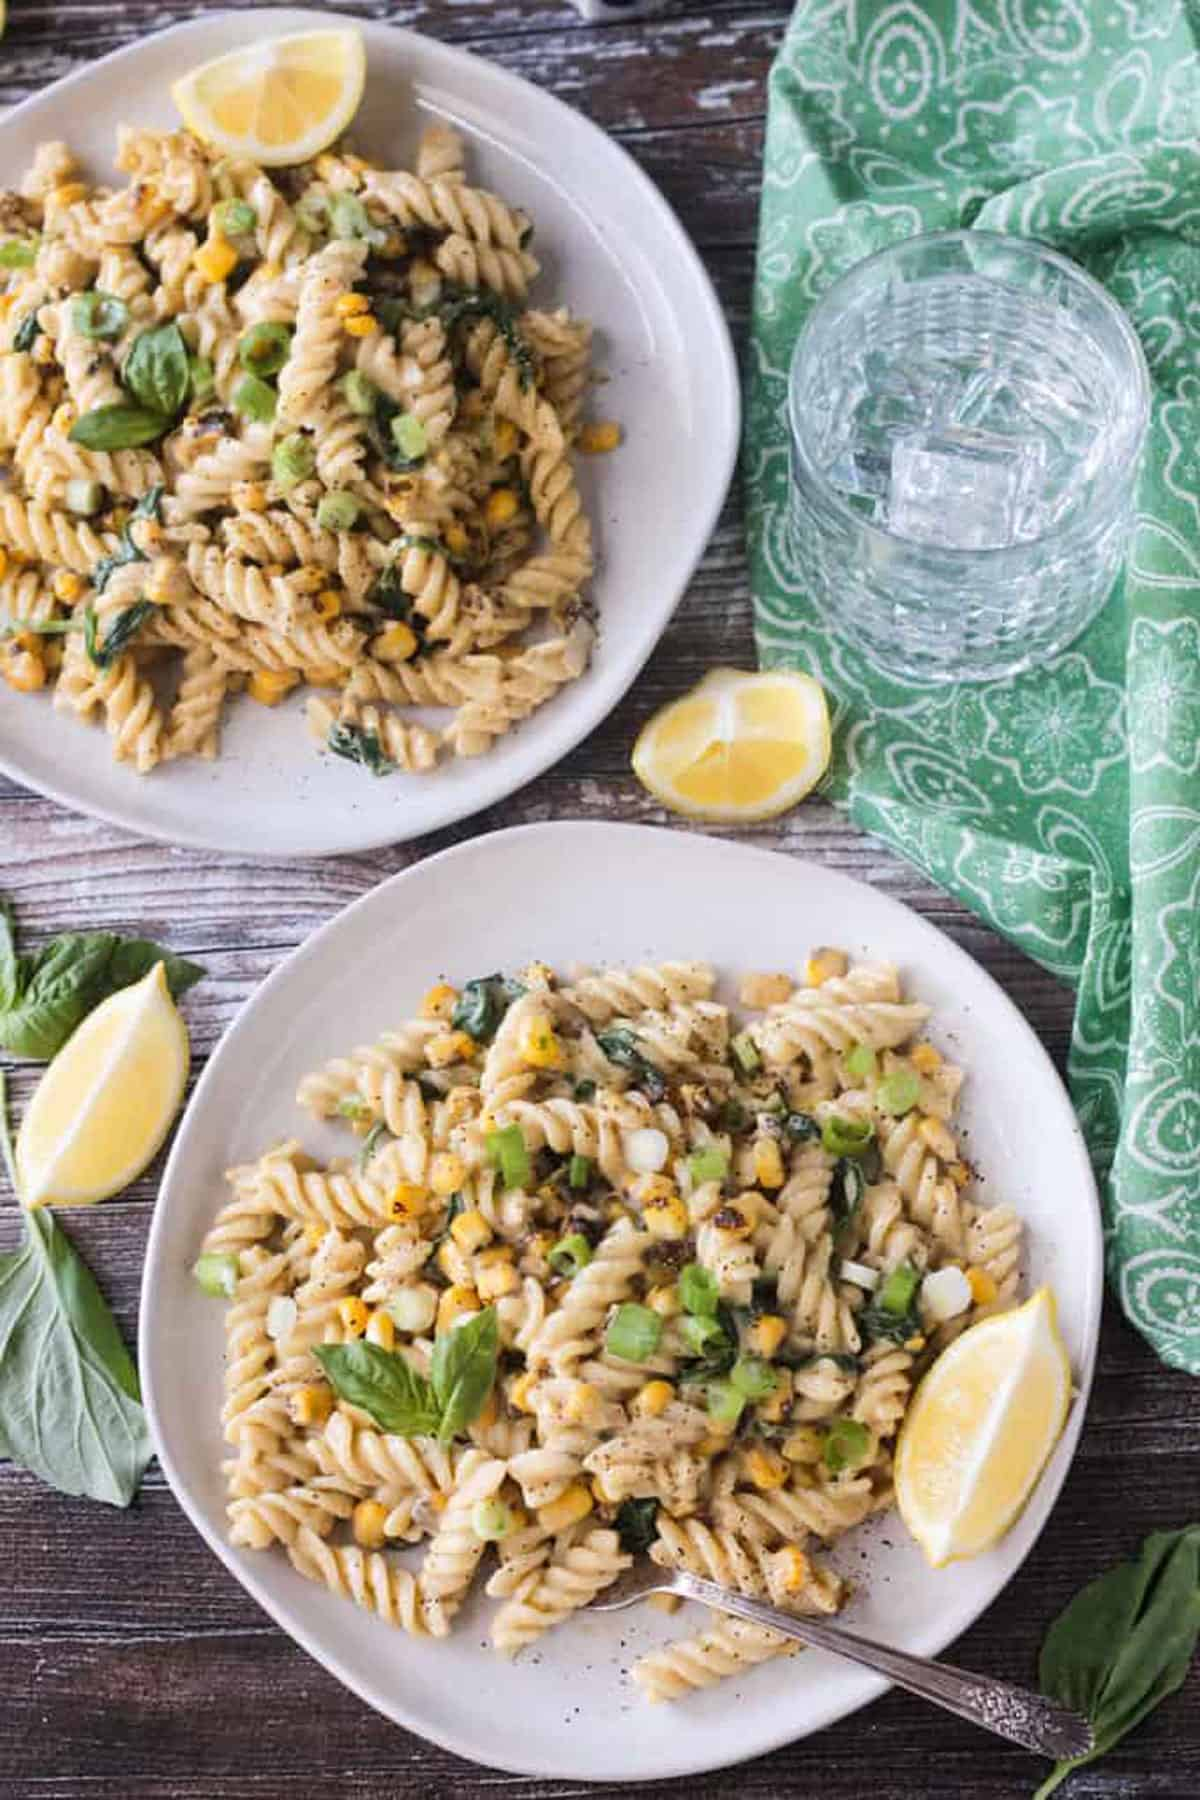 Two plates of rotini pasta with corn kernels and basil.